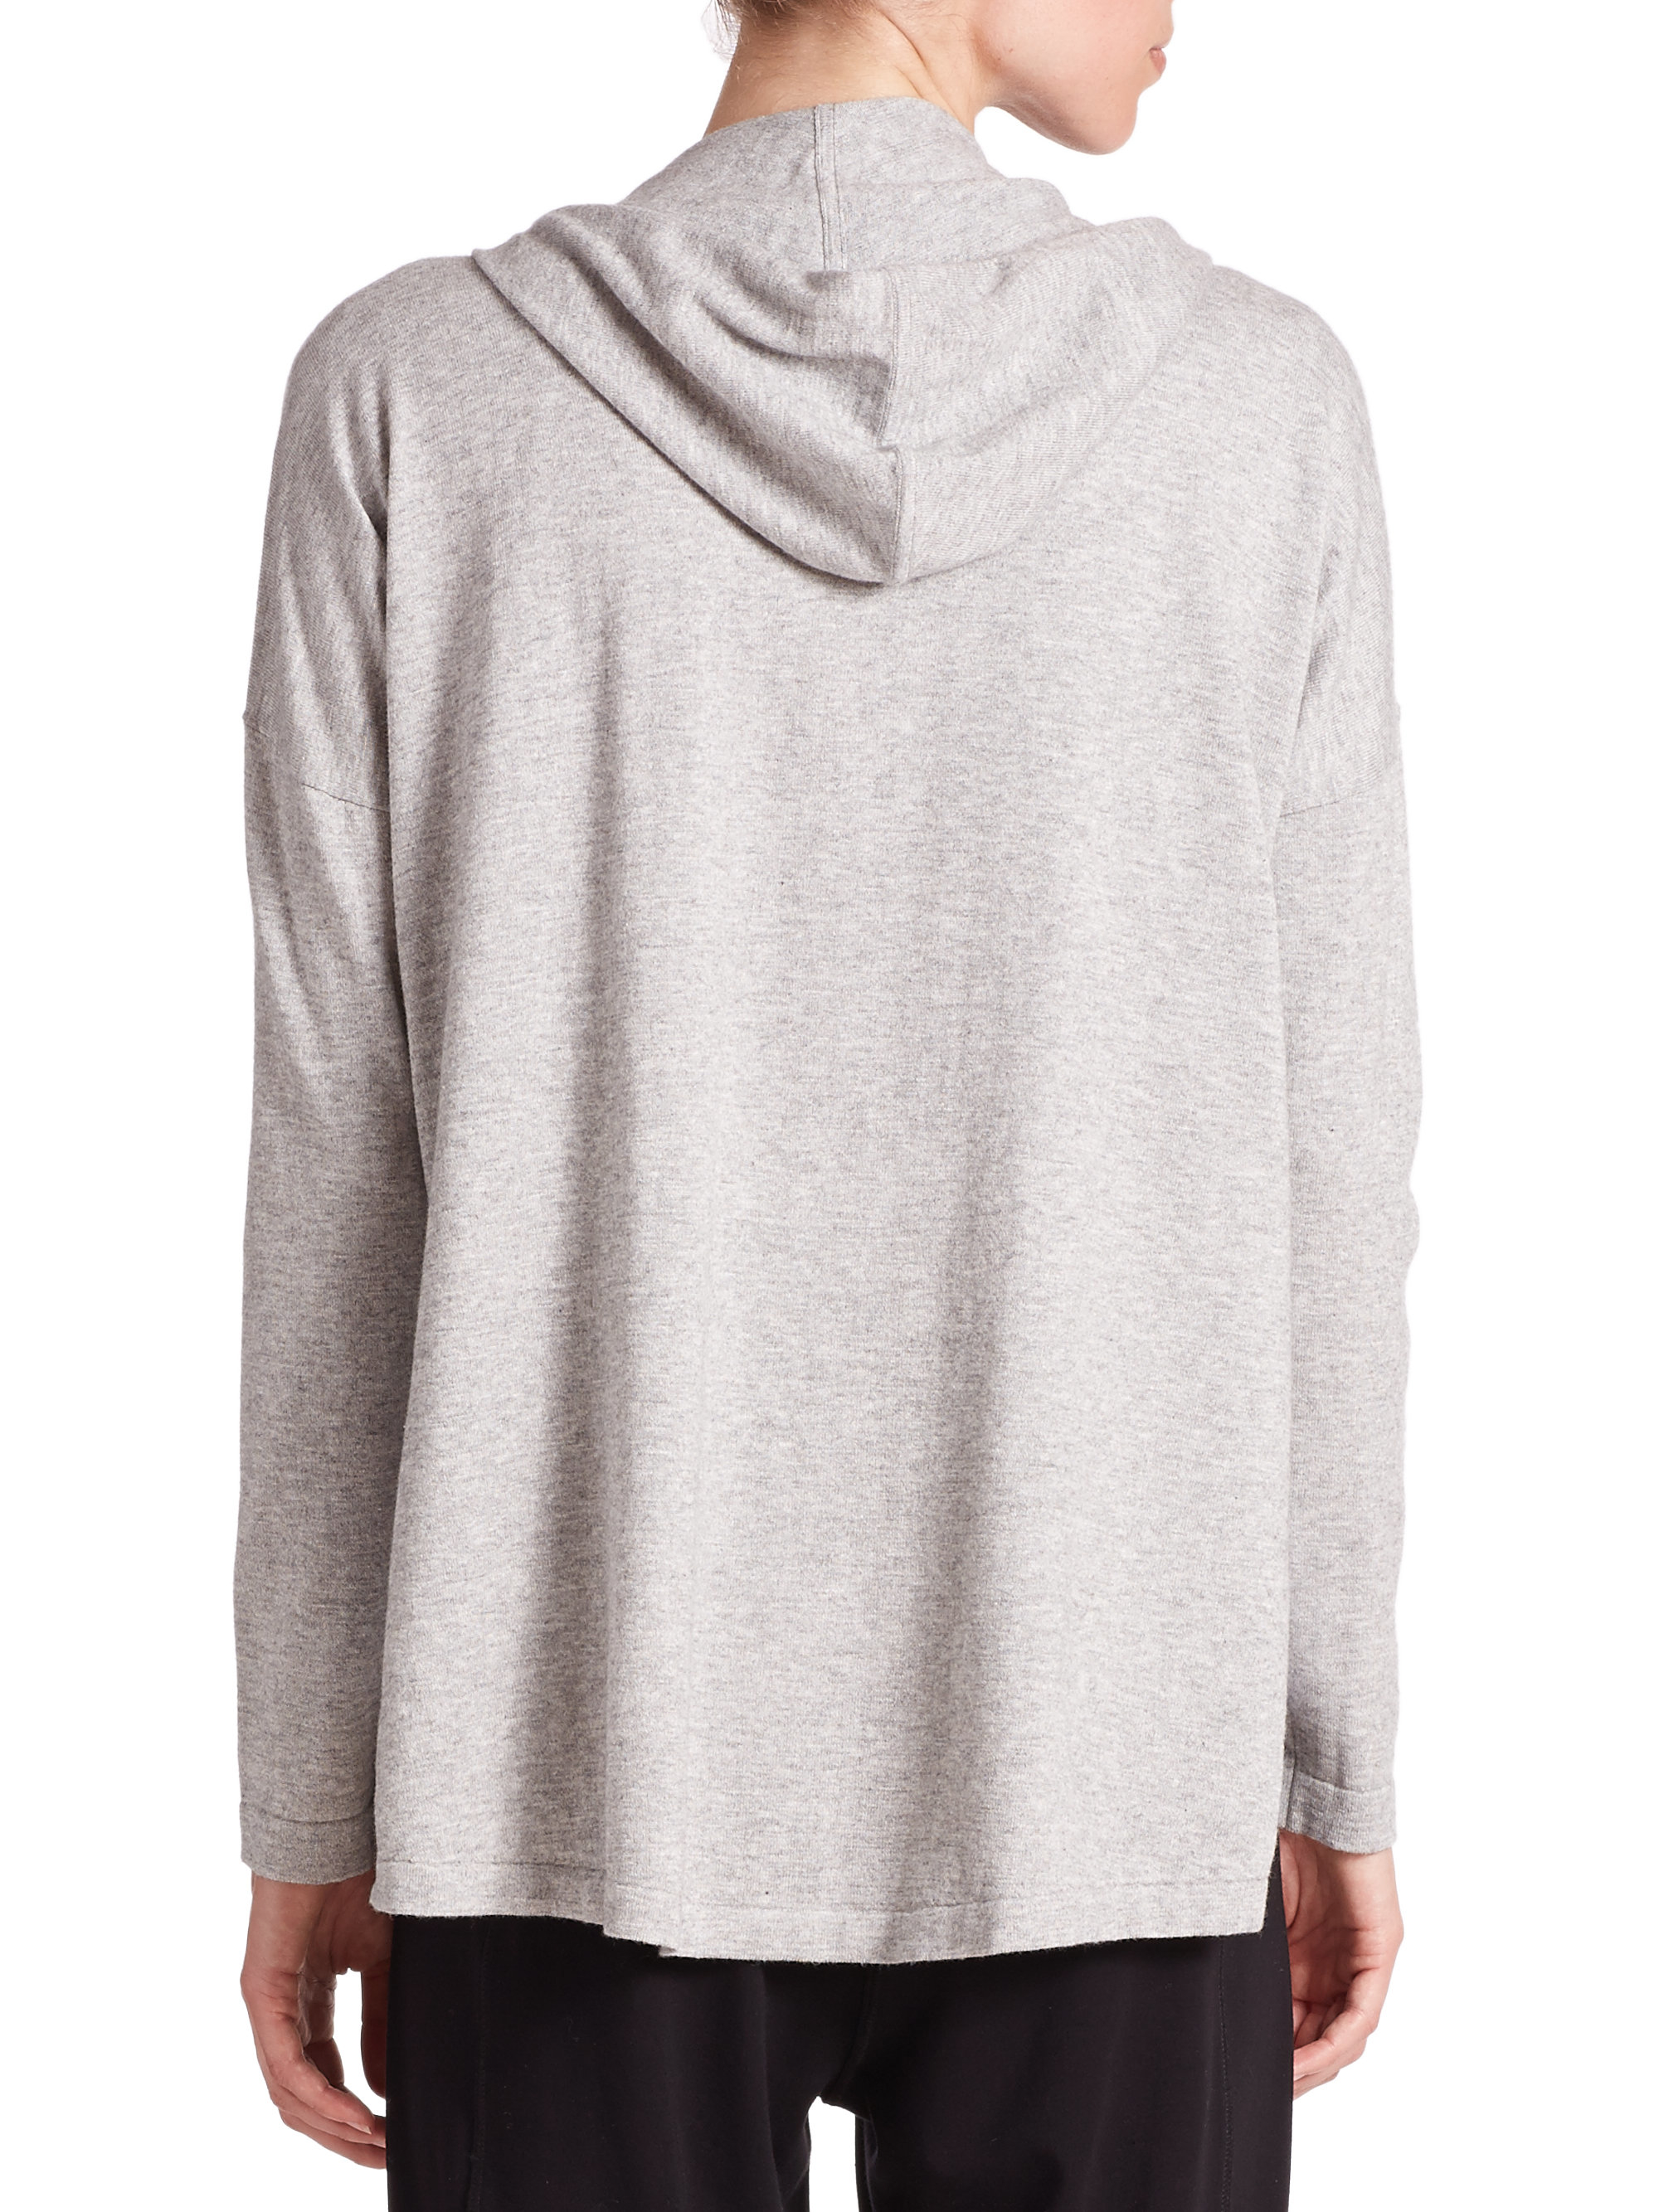 Eileen fisher Organic Cotton & Cashmere Hoodie in Gray   Lyst